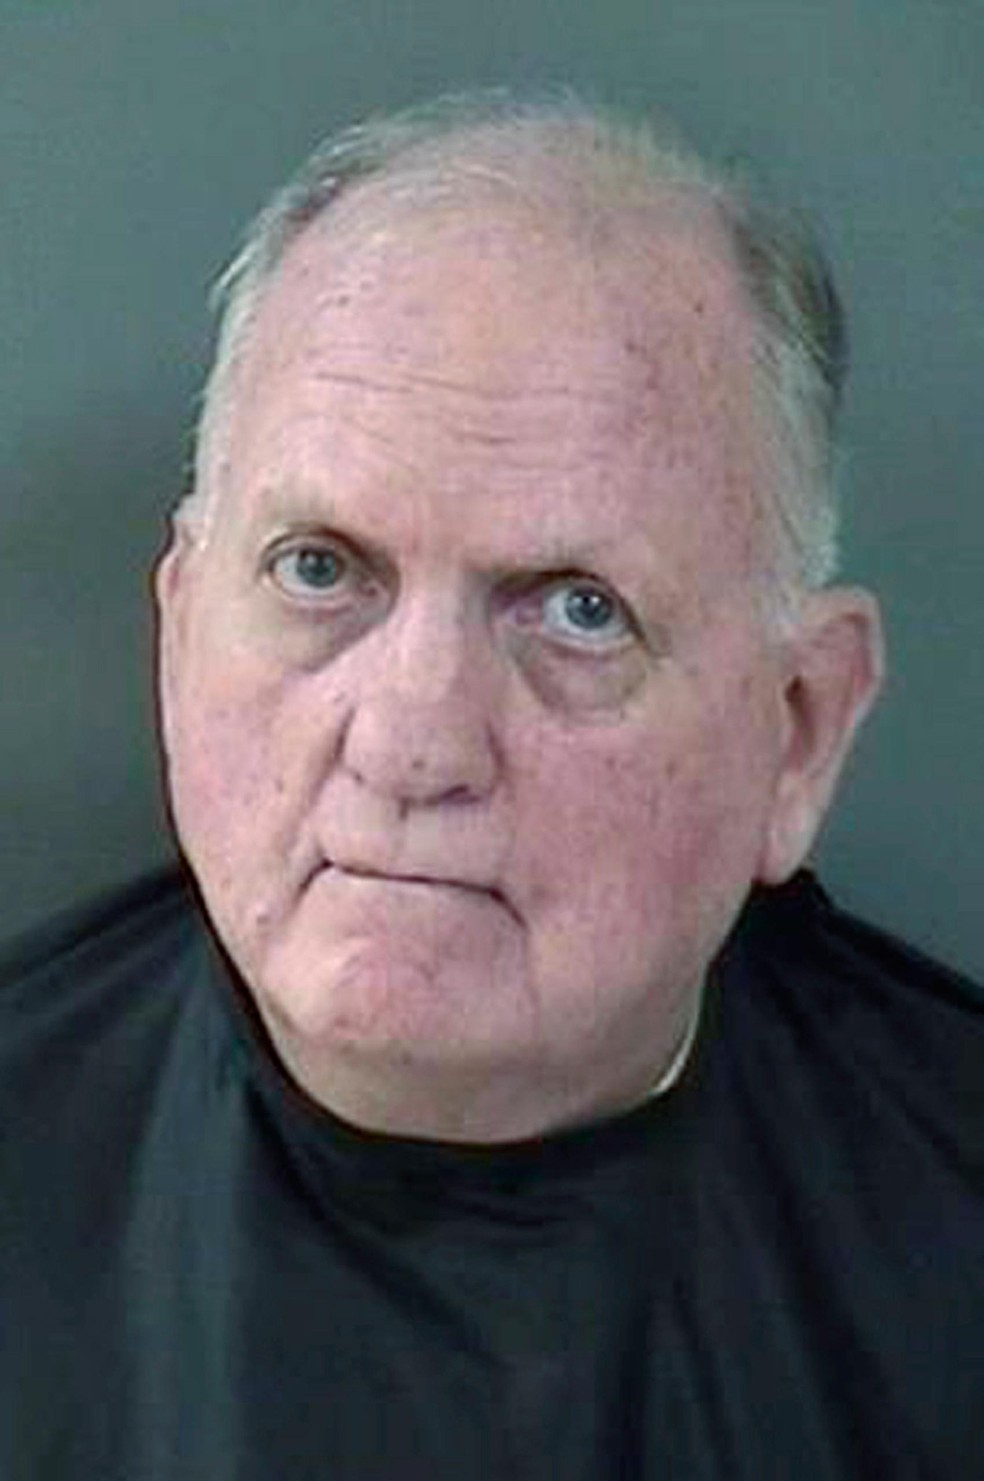 Earle Stevens (Foto: Indian River County Sheriff's Office via AP)